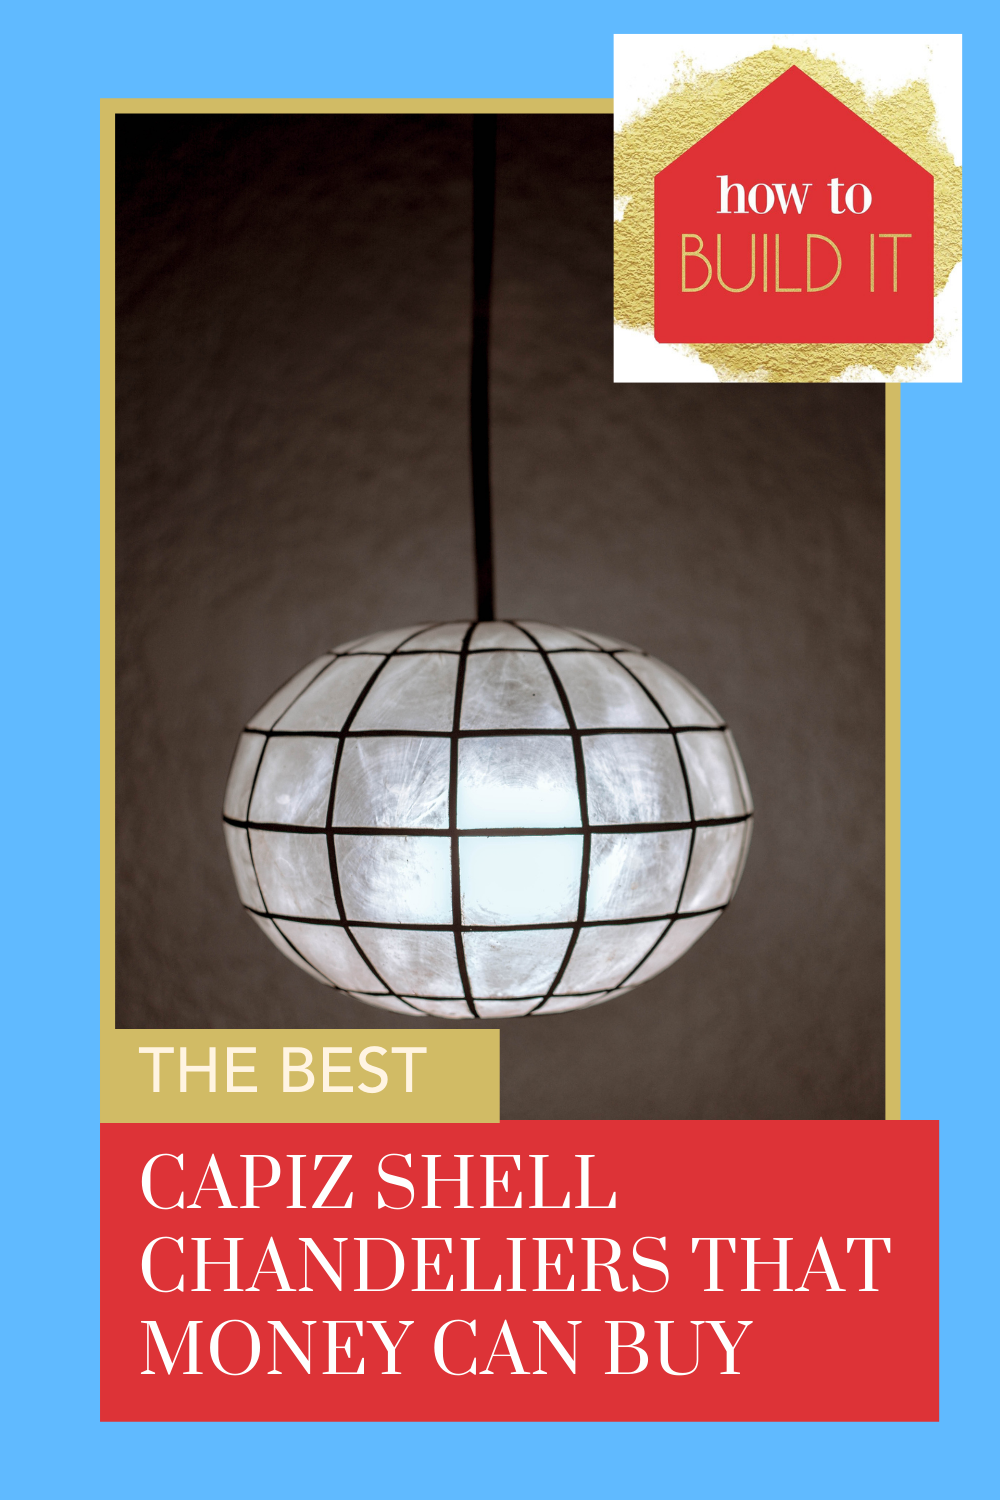 Howtobuildit.org is the place you NEED to look for ideas and inspo for your next DIY or home improvement project! Add the perfect chandelier to your dining area! These capiz shell chandeliers would look in any space.